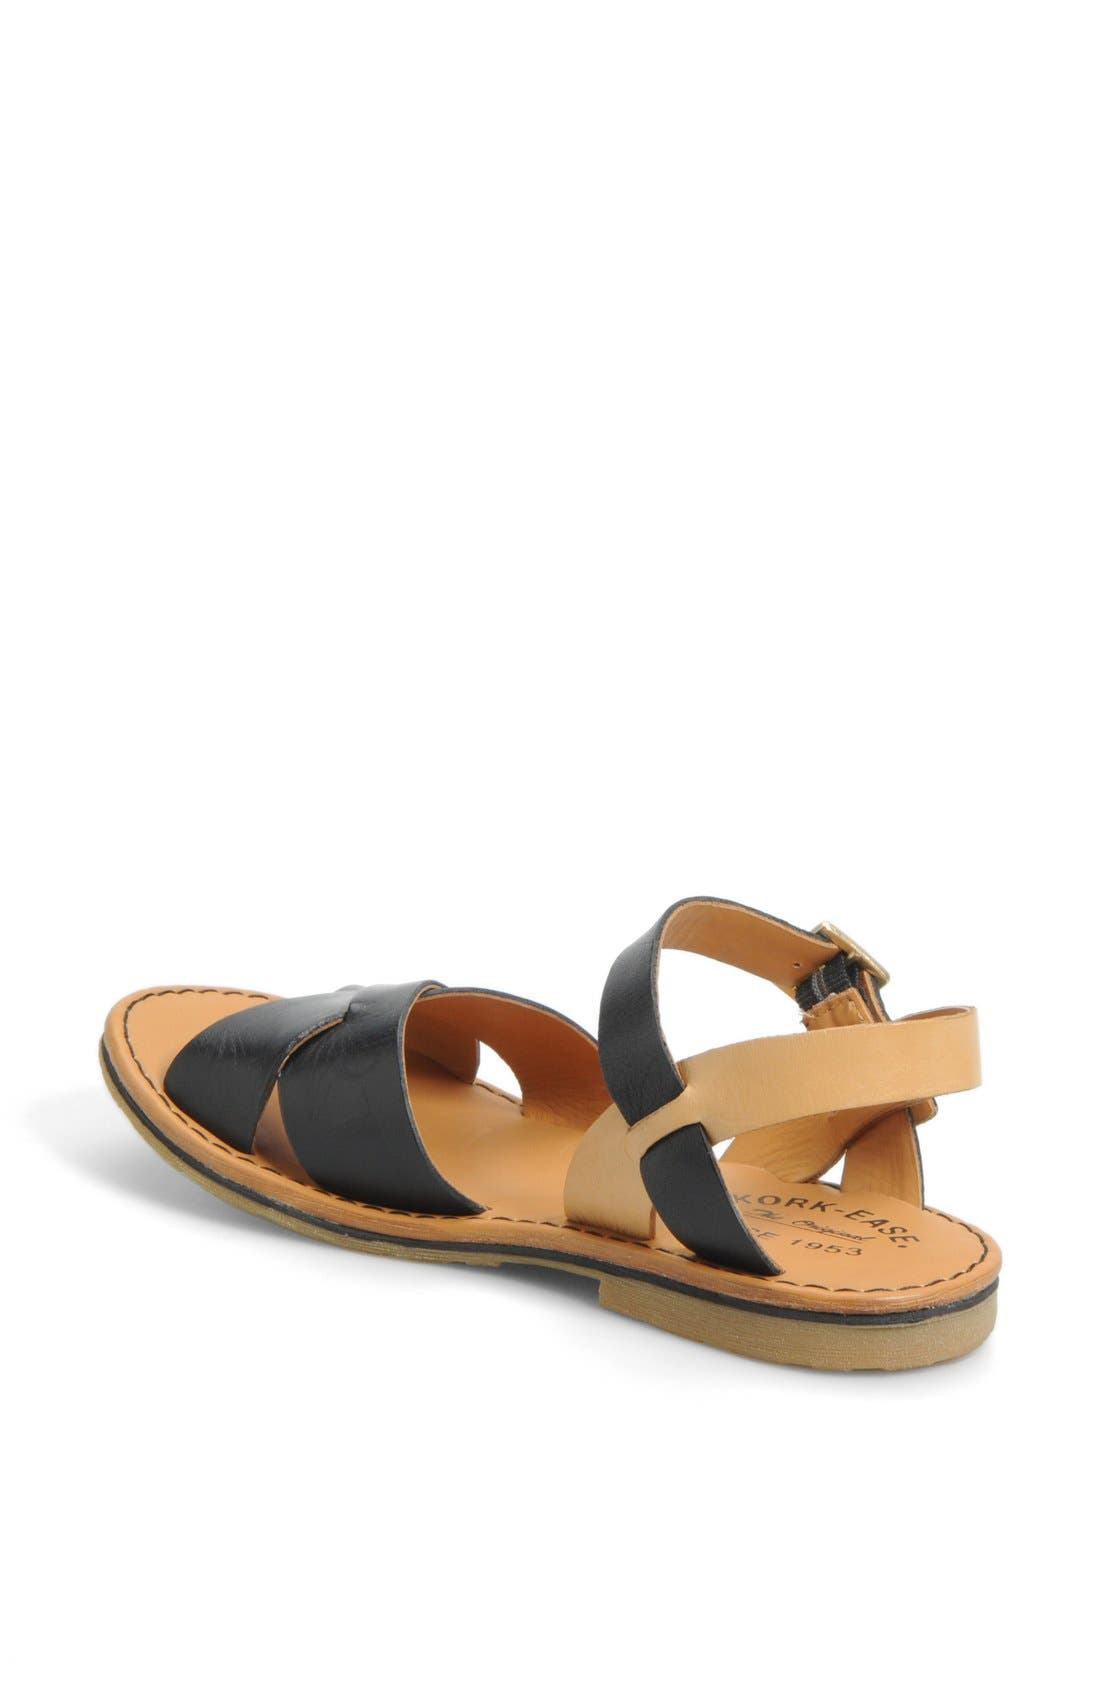 'Corine' Sandal,                             Alternate thumbnail 3, color,                             002